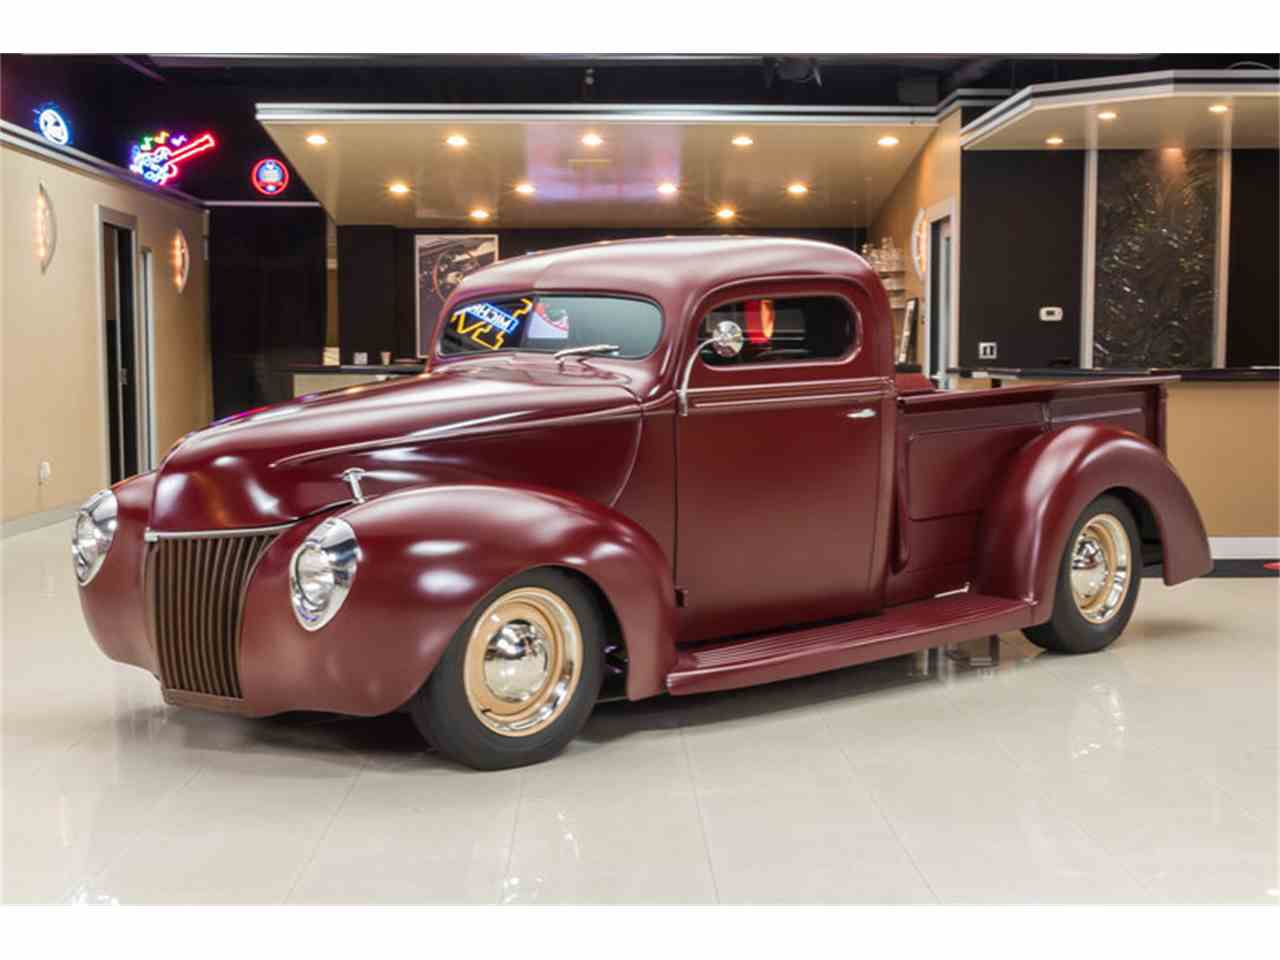 Large Picture of Classic 1940 Ford Pickup located in Michigan - $54,900.00 Offered by Vanguard Motor Sales - FILH